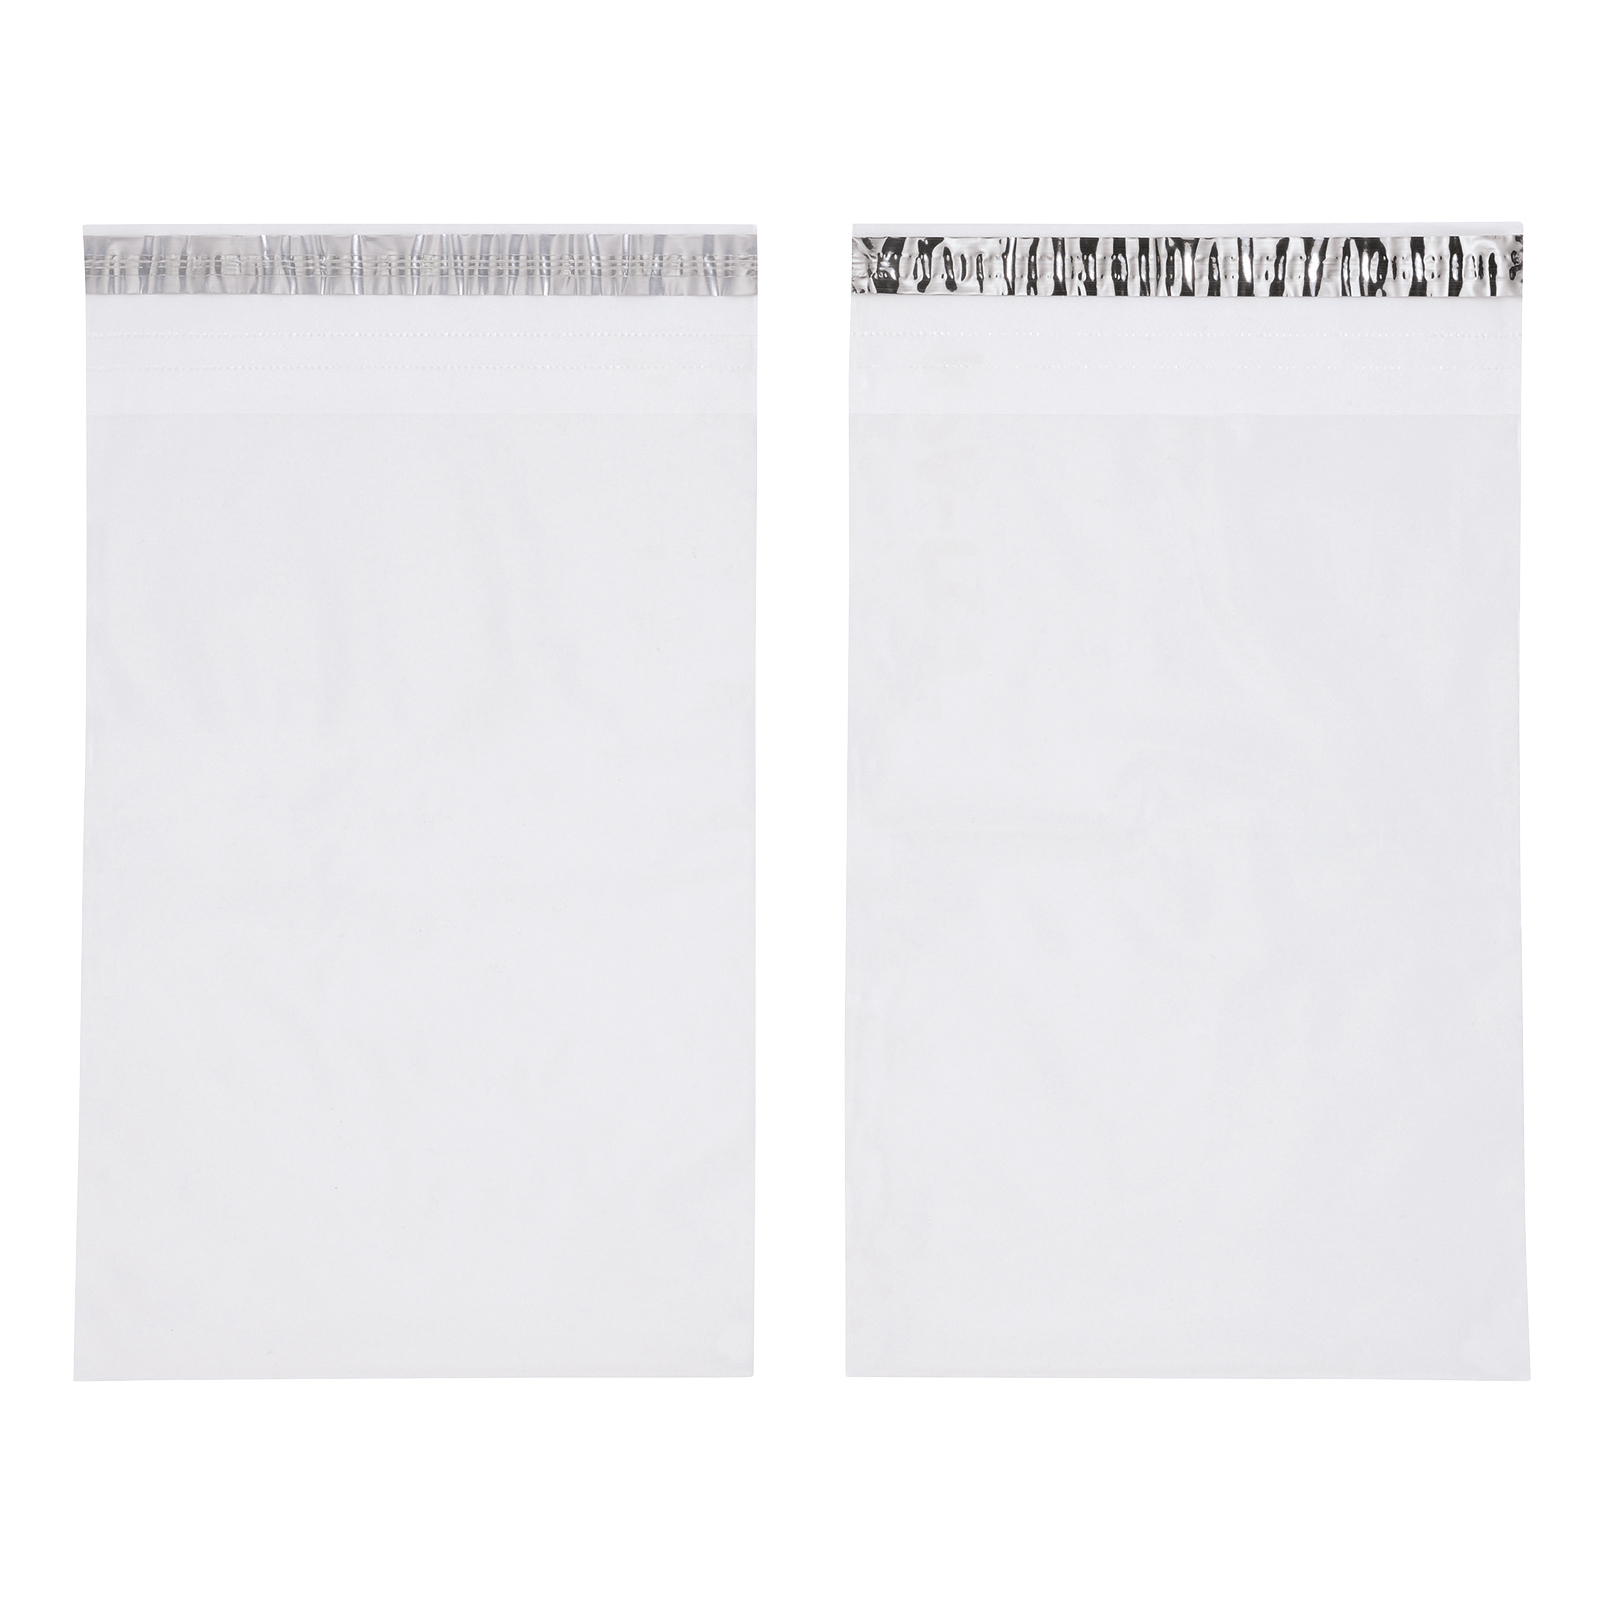 Keepsafe LightWeight Envelope Clear No Print C4 W235xH310mm Peel&Seal Ref KSV-LC2 [Pack 100]